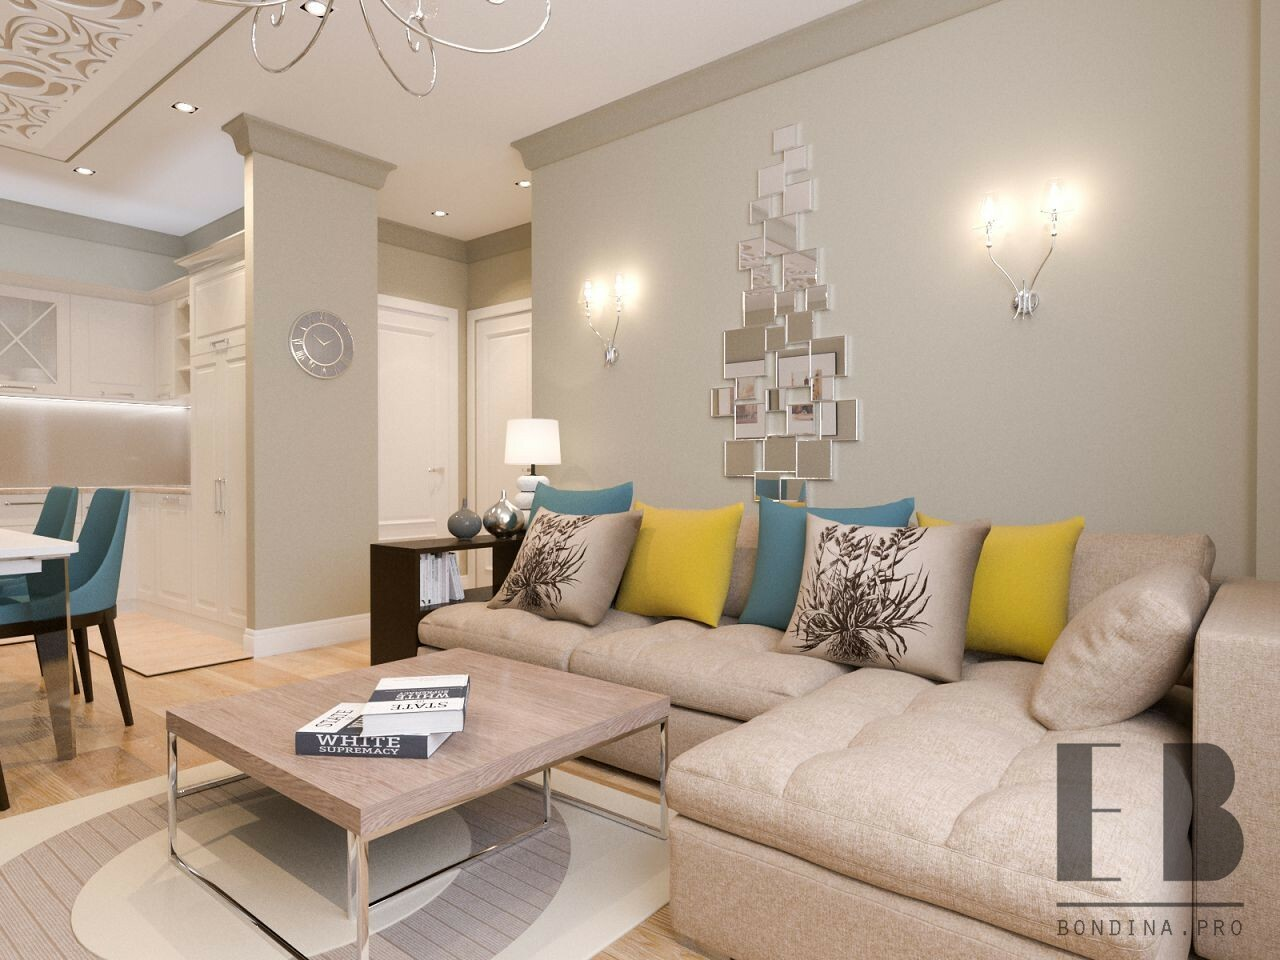 Traditional living room design with beige corner sofa and bright cushions